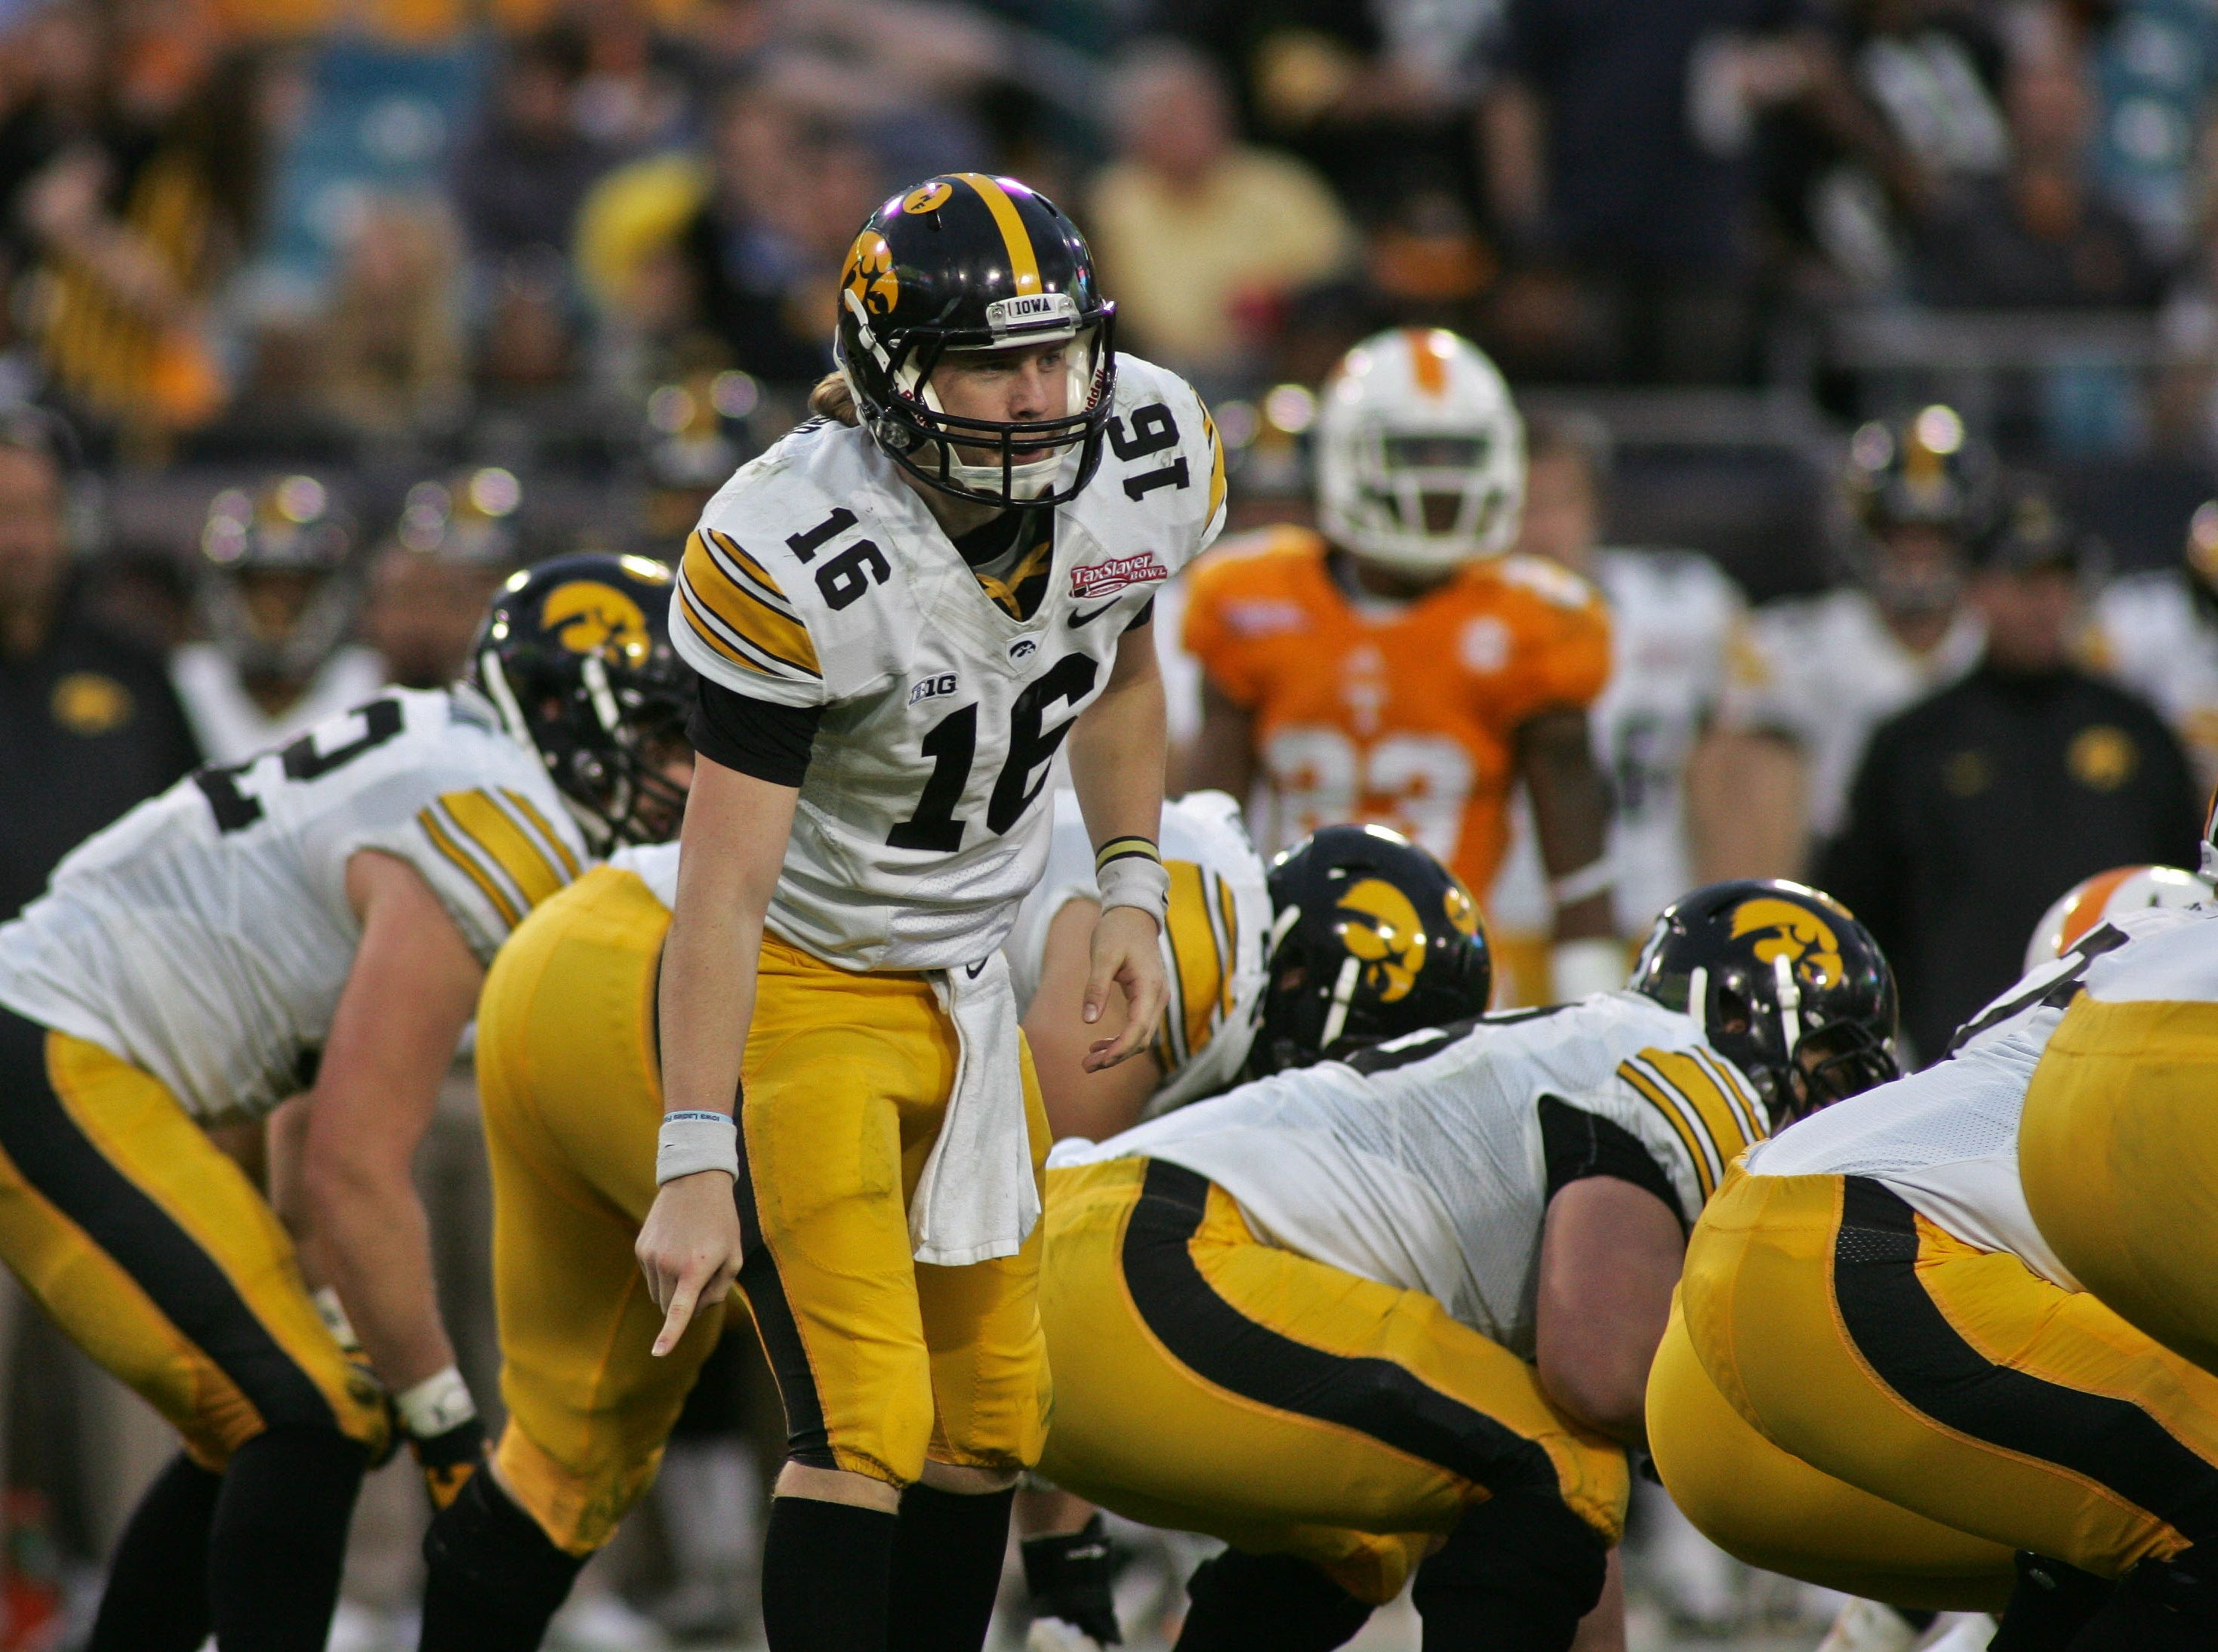 Jan 2, 2015; Jacksonville, FL, USA; Iowa Hawkeyes quarterback C.J. Beathard (16) calls an audible in the third quarter of the 2015 TaxSlayer Bowl against the Tennessee Volunteers at EverBank Field. The Tennessee Volunteers beat the Iowa Hawkeyes 45-28. Mandatory Credit: Phil Sears-USA TODAY Sports